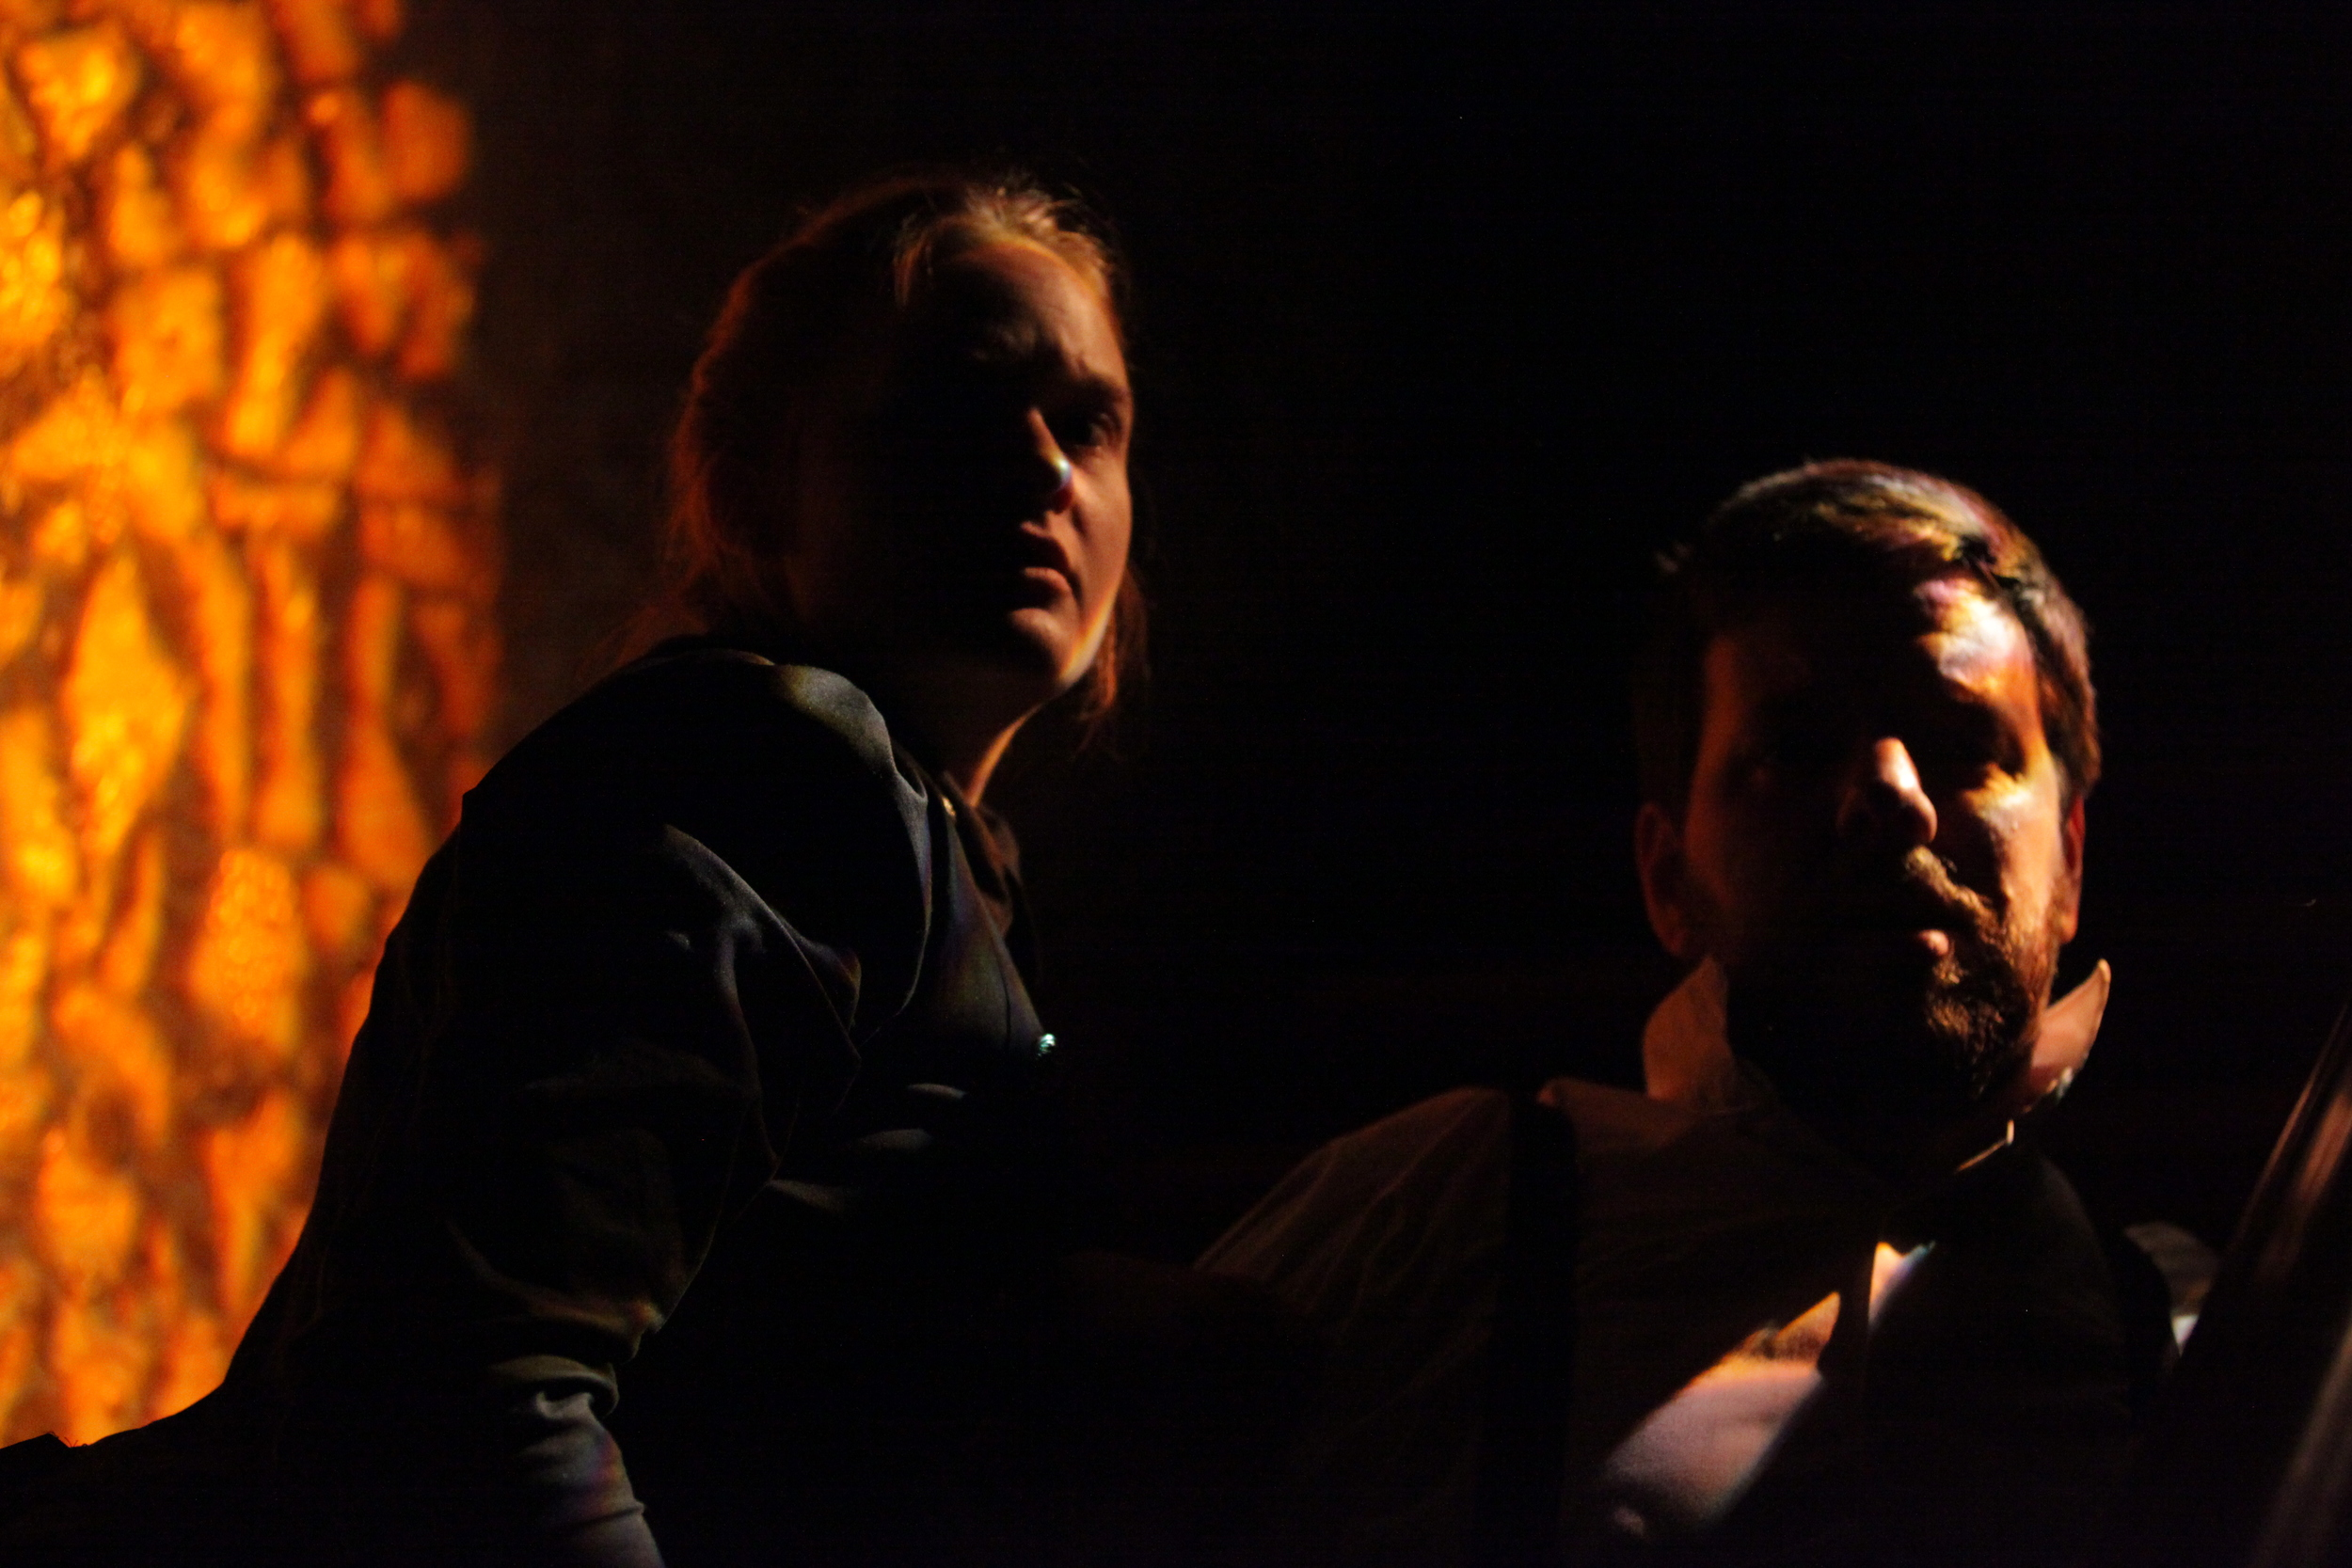 Stephen Libby and Anna Waldron in The Turn of the Screw. Photo by Kyler Taustin.